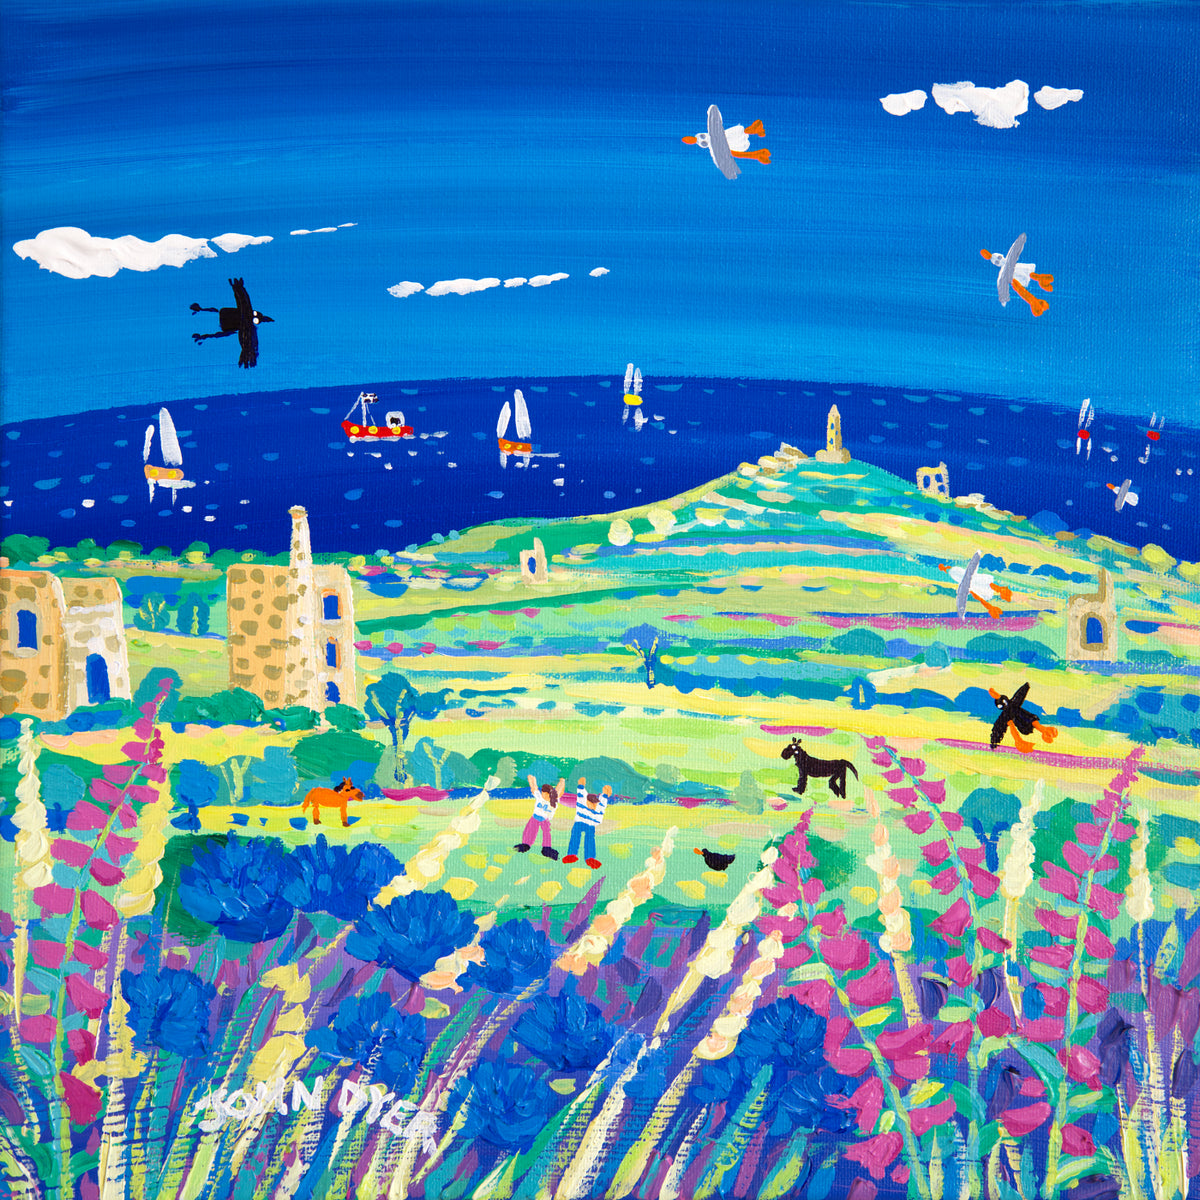 John Dyer Painting. Walking to Carn Brea, Cornwall.